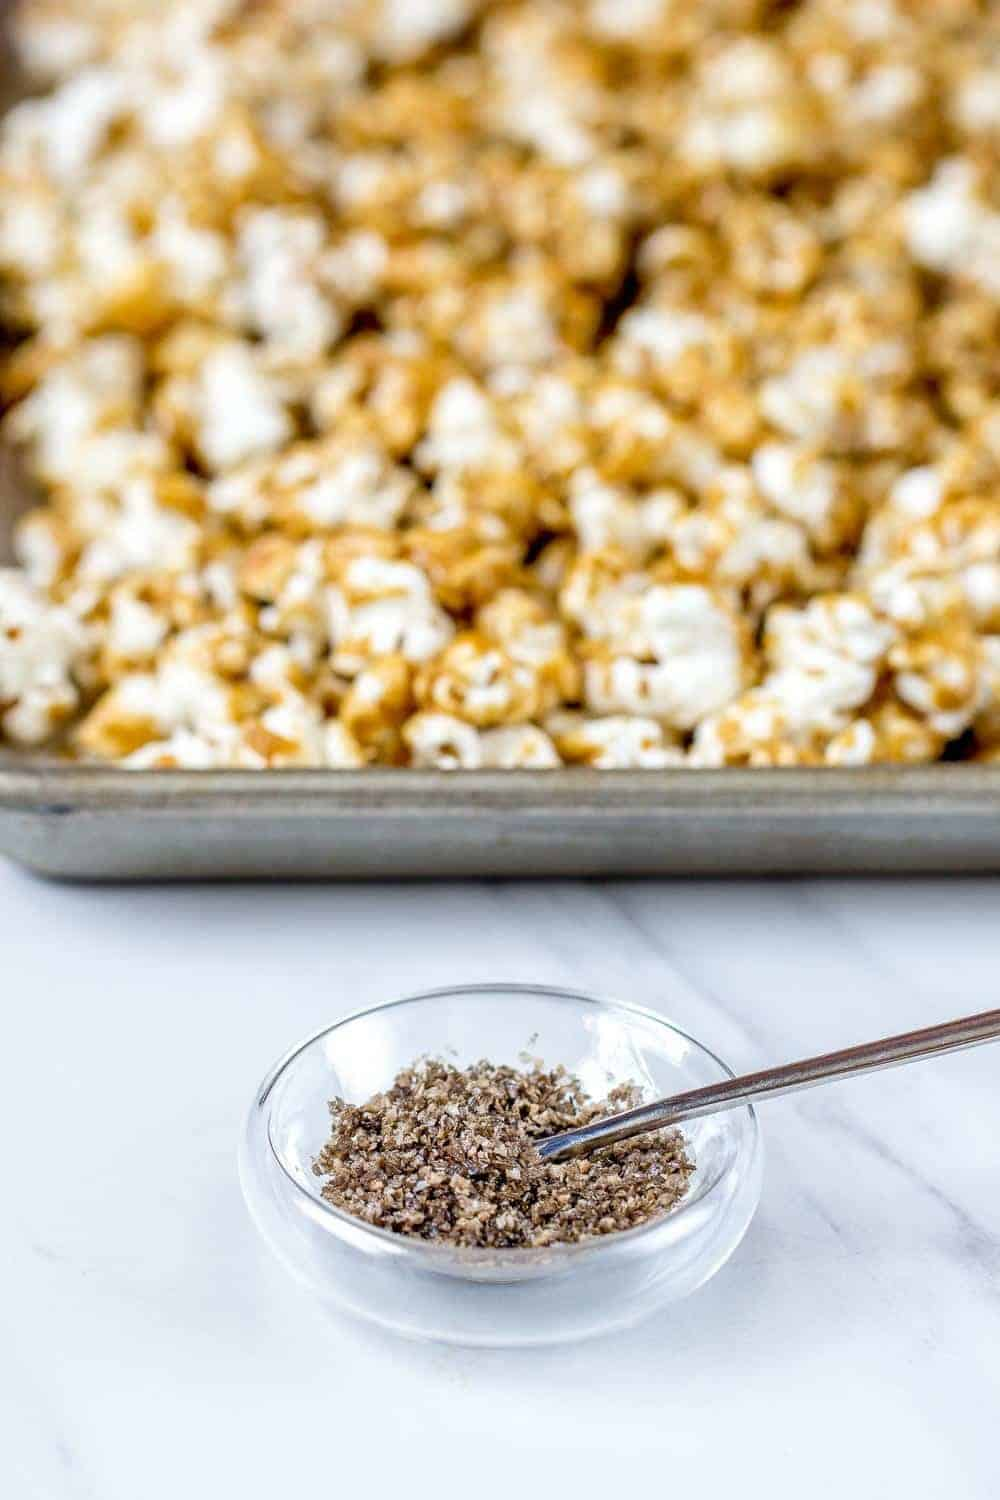 Smoked salt adds umami to the standard caramel corn. You'll love it!